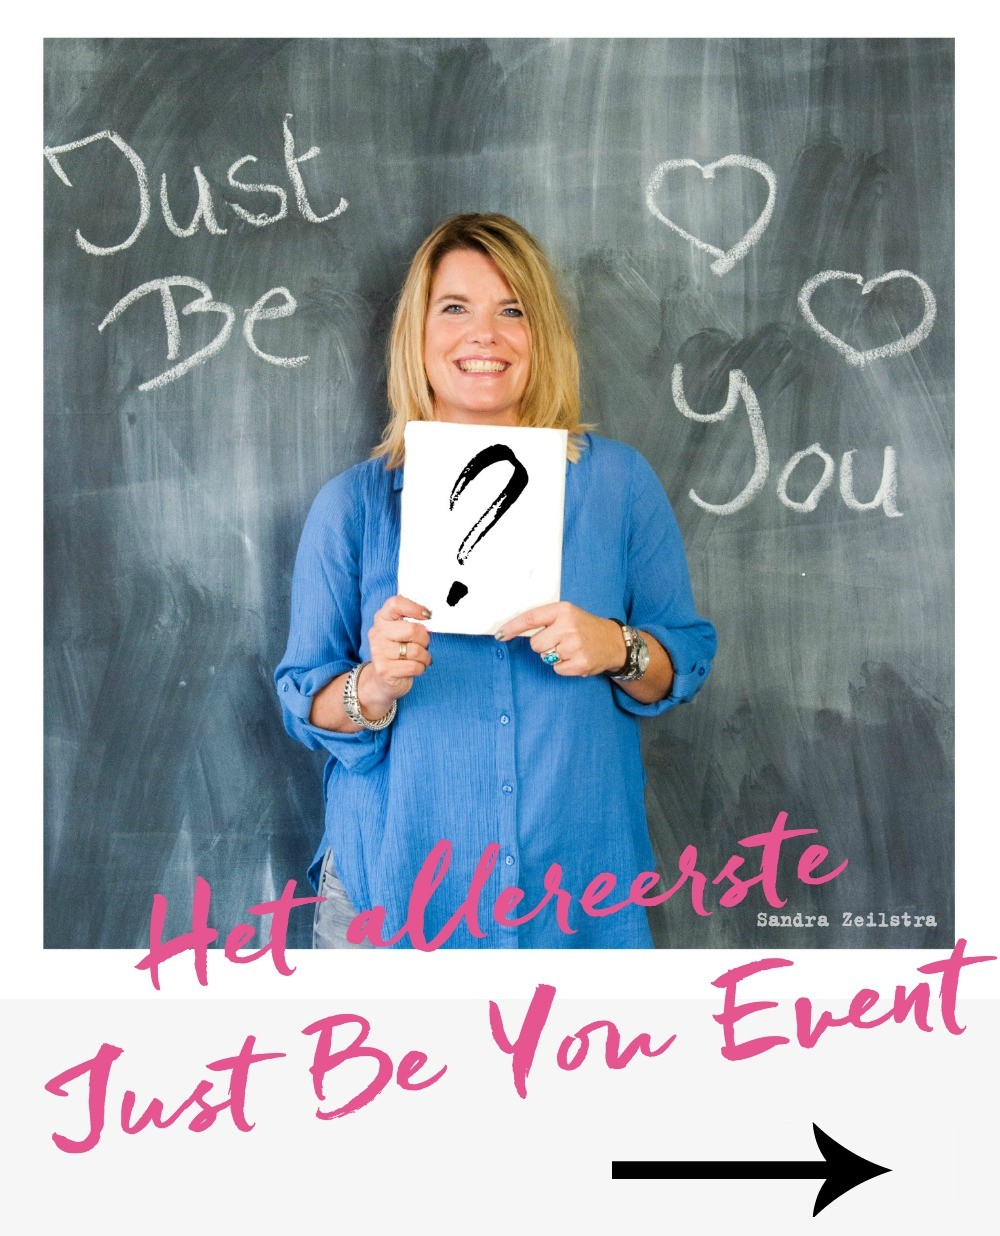 Just Be You Event